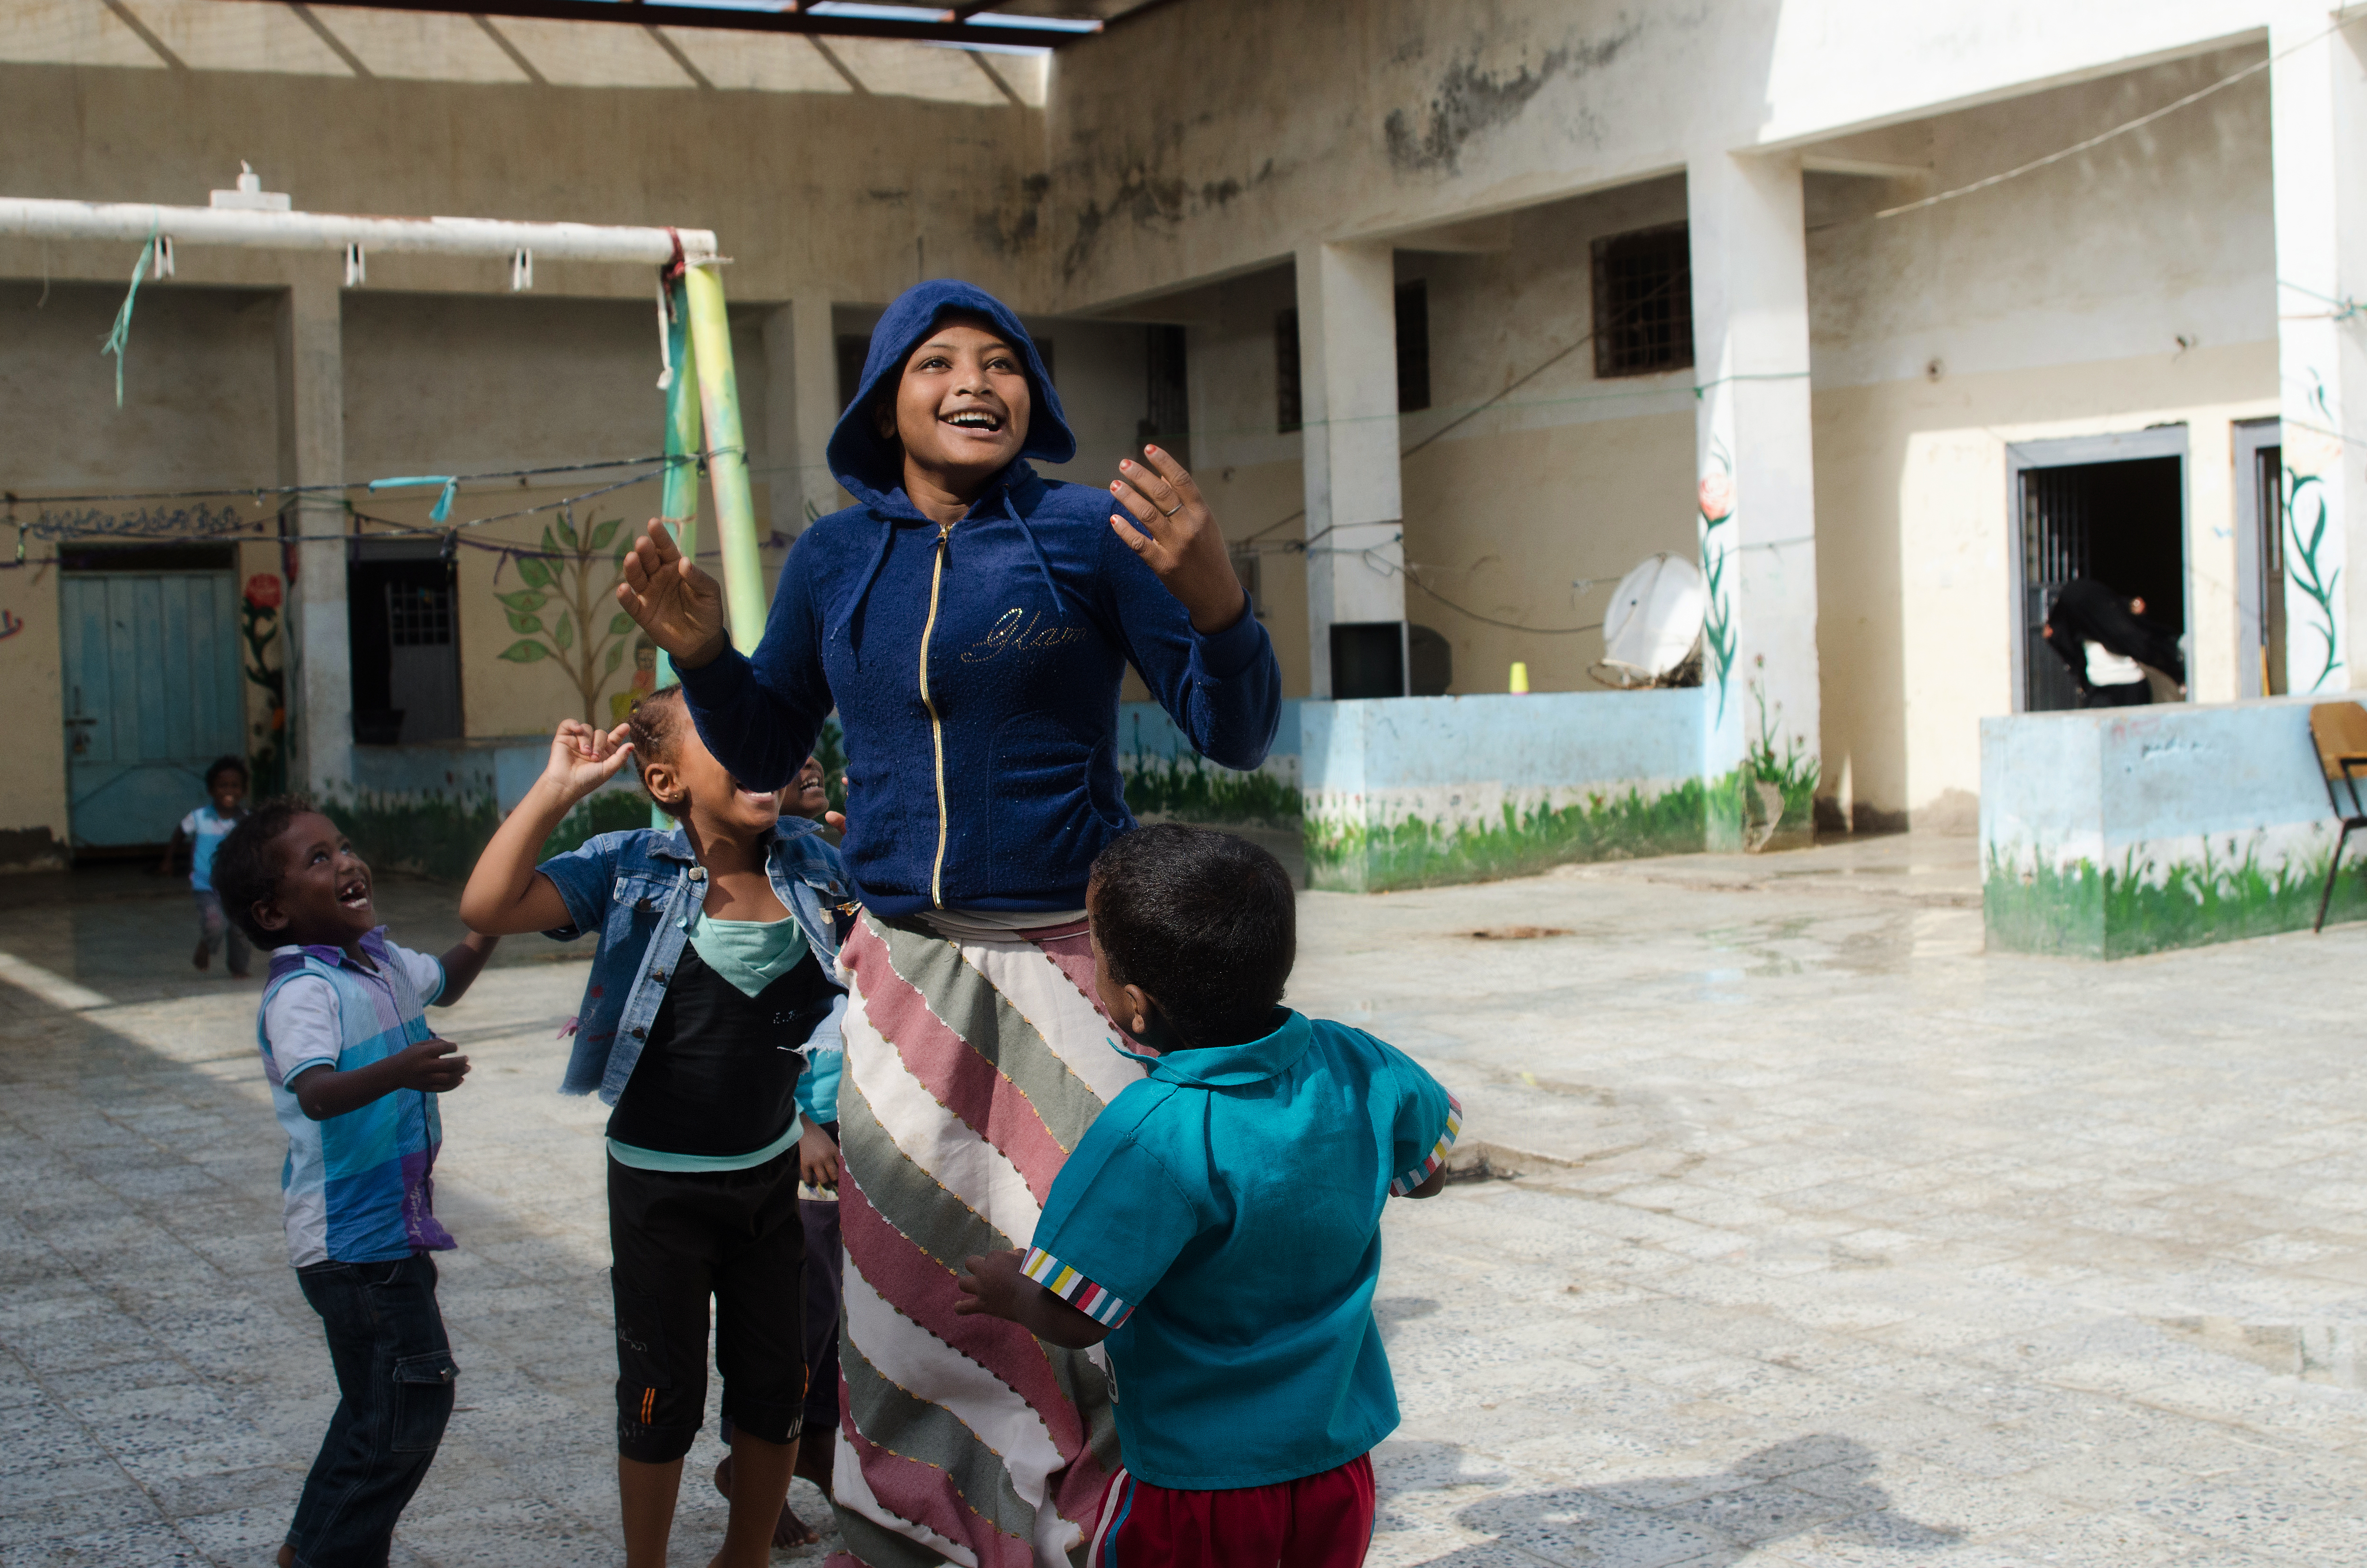 Saeeda, age 16, playing with children from Ethiopia and Eritrea in Hodeidah central prison. Saeeda has special needs, and was found by police and brought there as there's no other place for women in her situation. Photo: Amira Al-Sharif/Progressio 2014